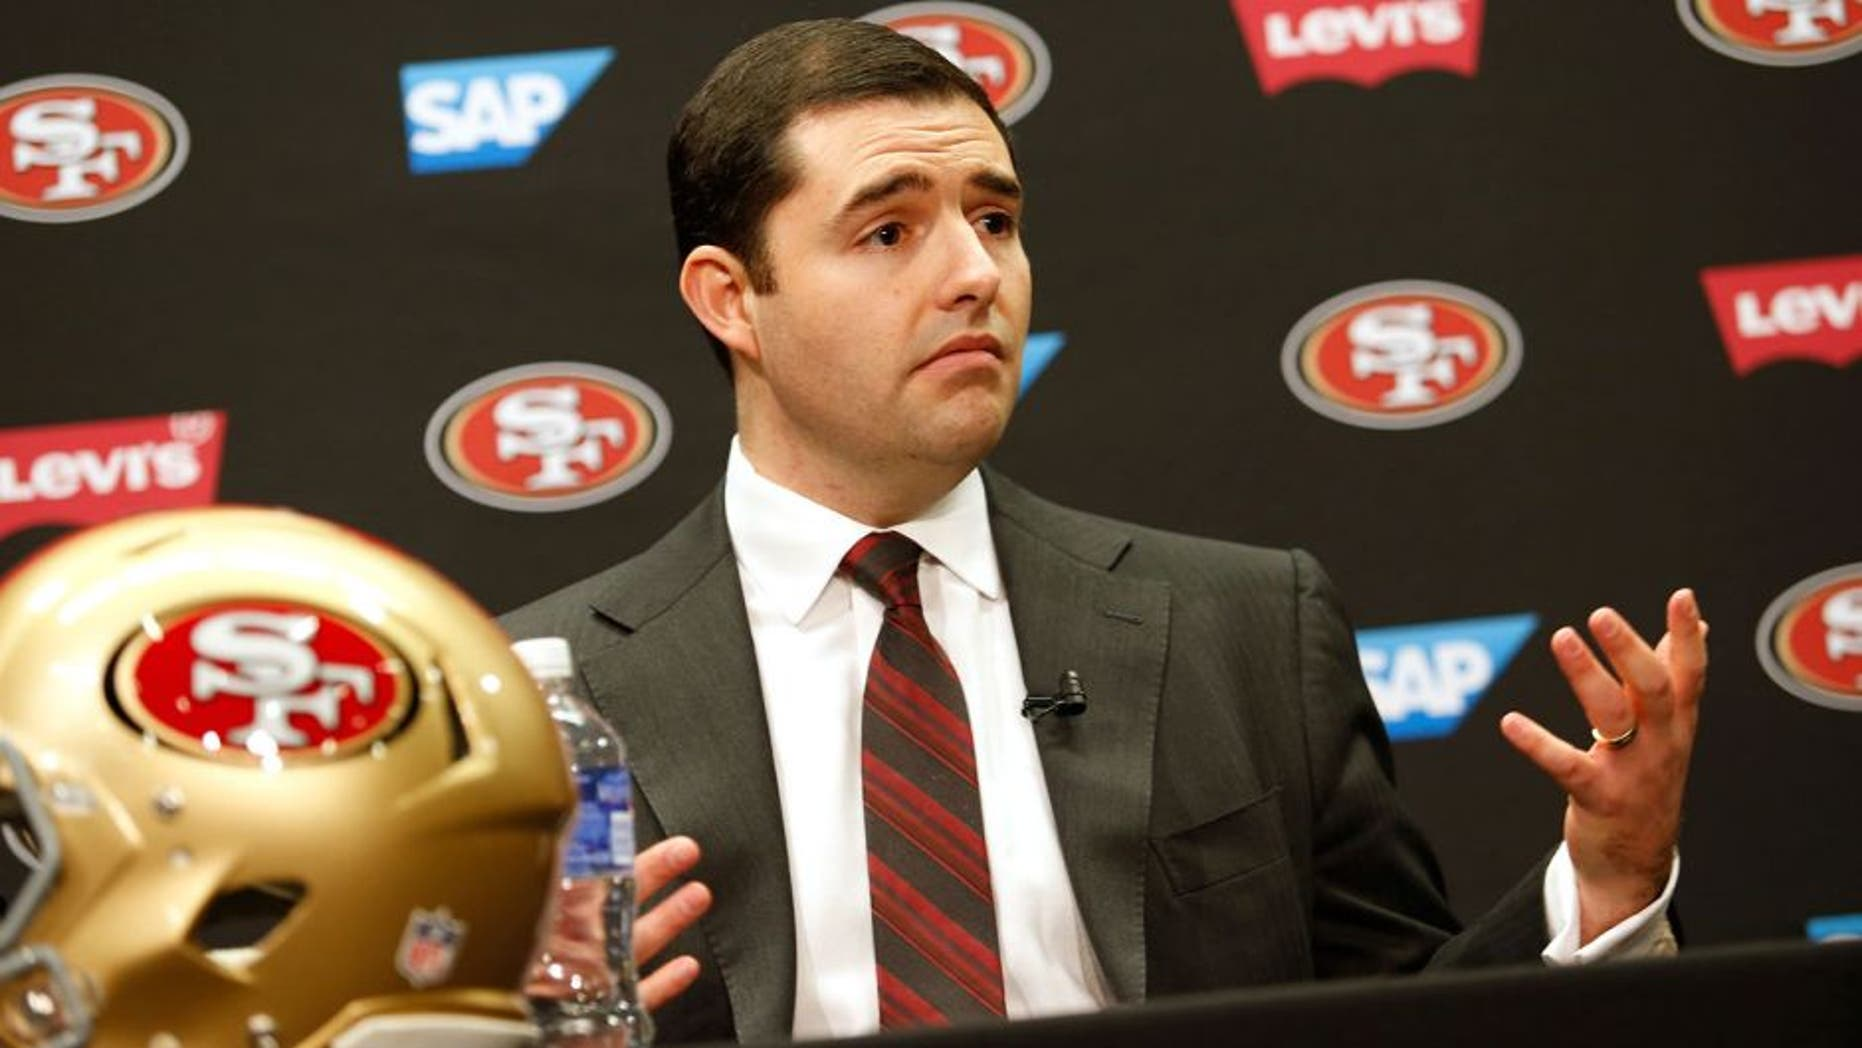 SANTA CLARA, CA - JANUARY 15: CEO Jed York addresses the media at Levi's Stadium on January 15, 2015 in Santa Clara, California. The San Francisco 49ers announced Jim Tomsula as their new head coach to replace Jim Harbaugh. (Photo by Michael Zagaris/San Francisco 49ers/Getty Images)